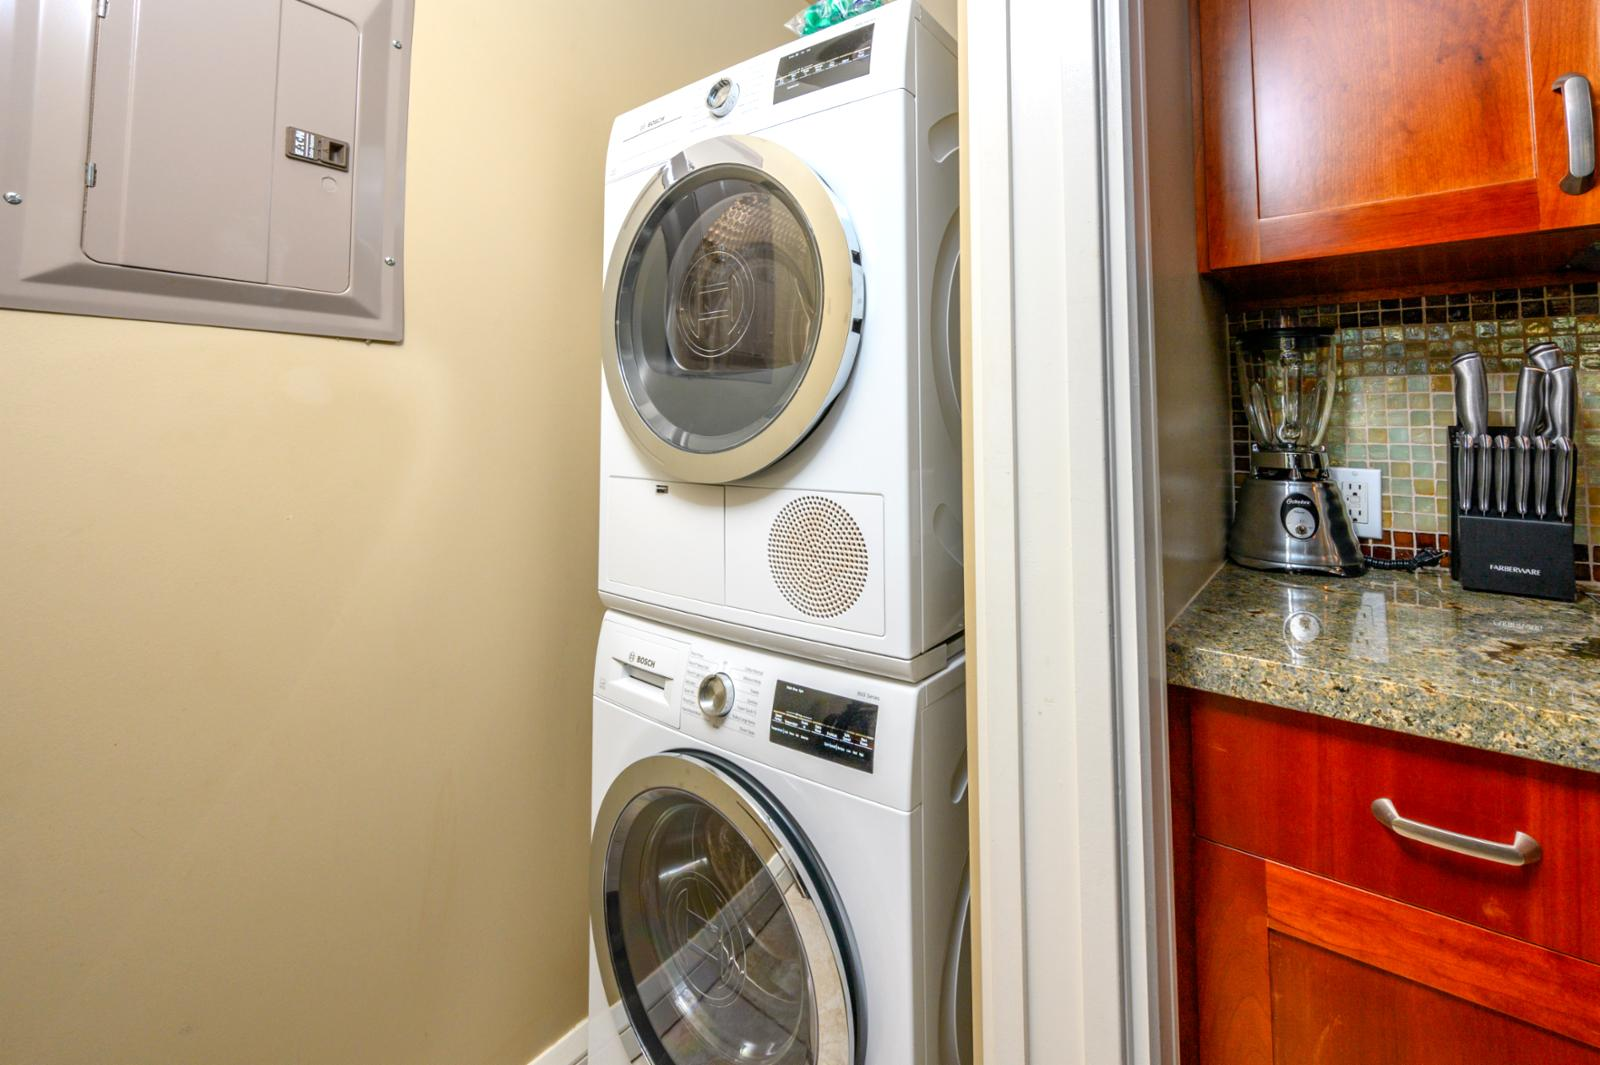 Washer and dryer in unit ready for use